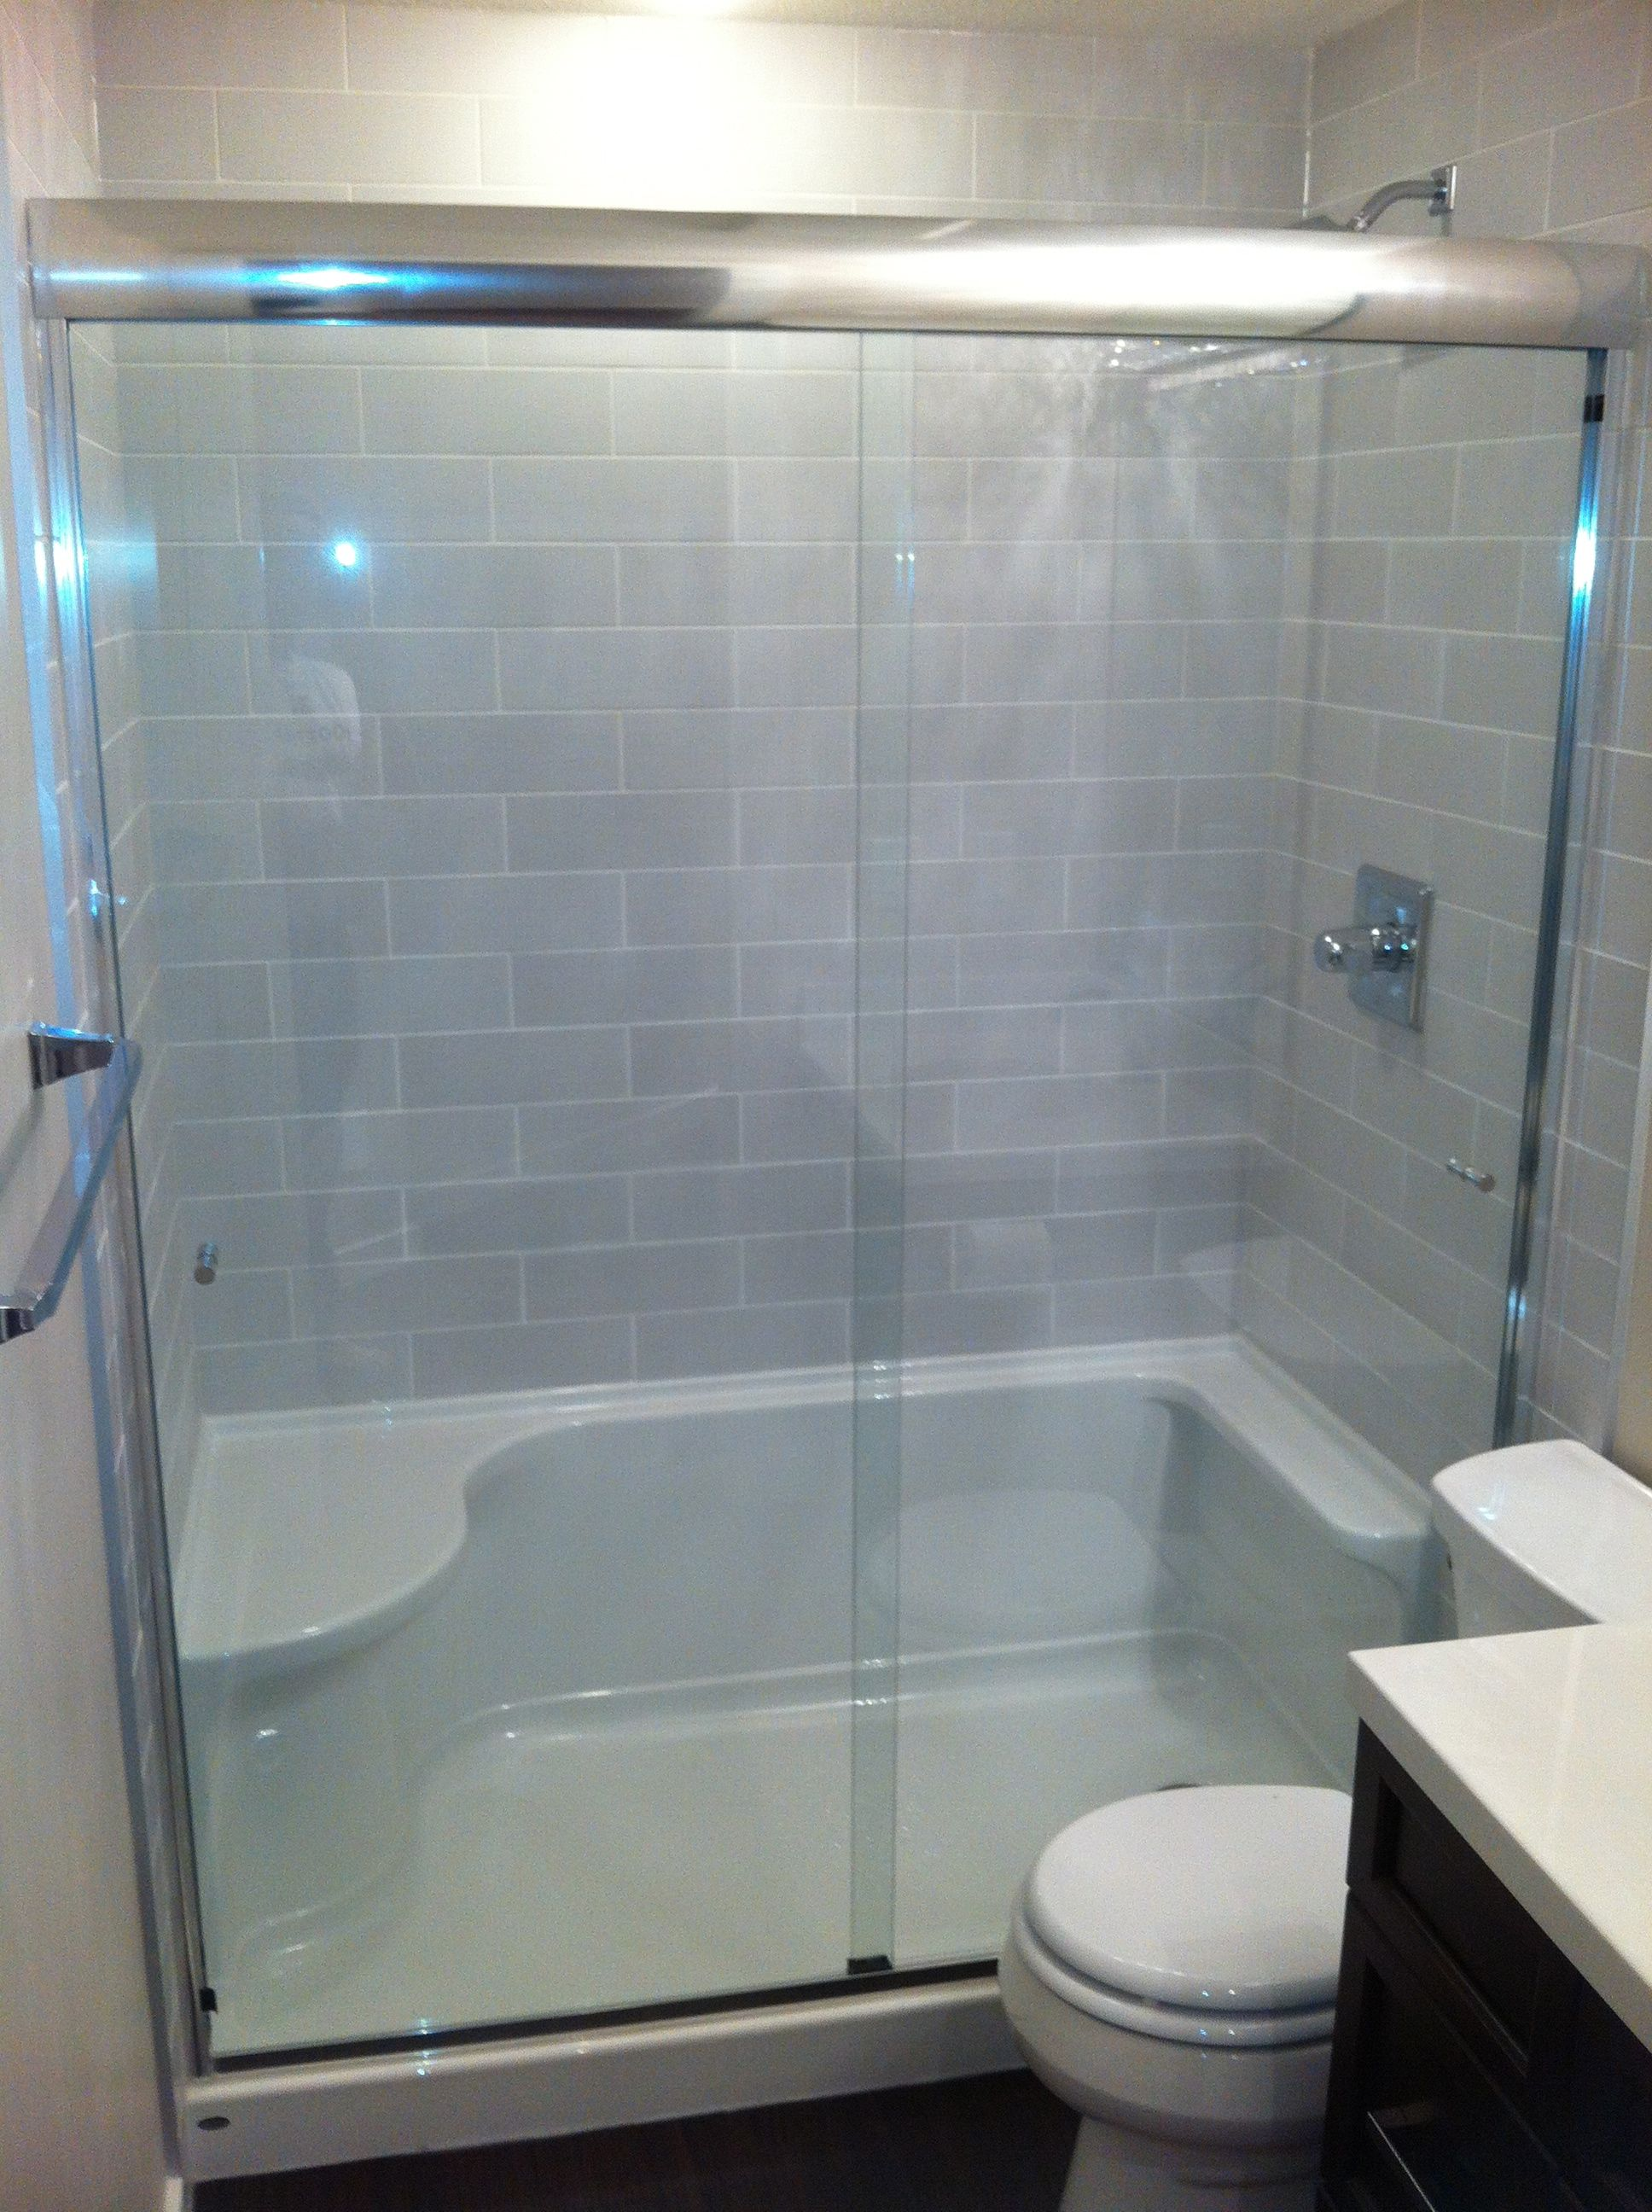 Tile shower & tub to shower conversion - bathroom renovation | House ...